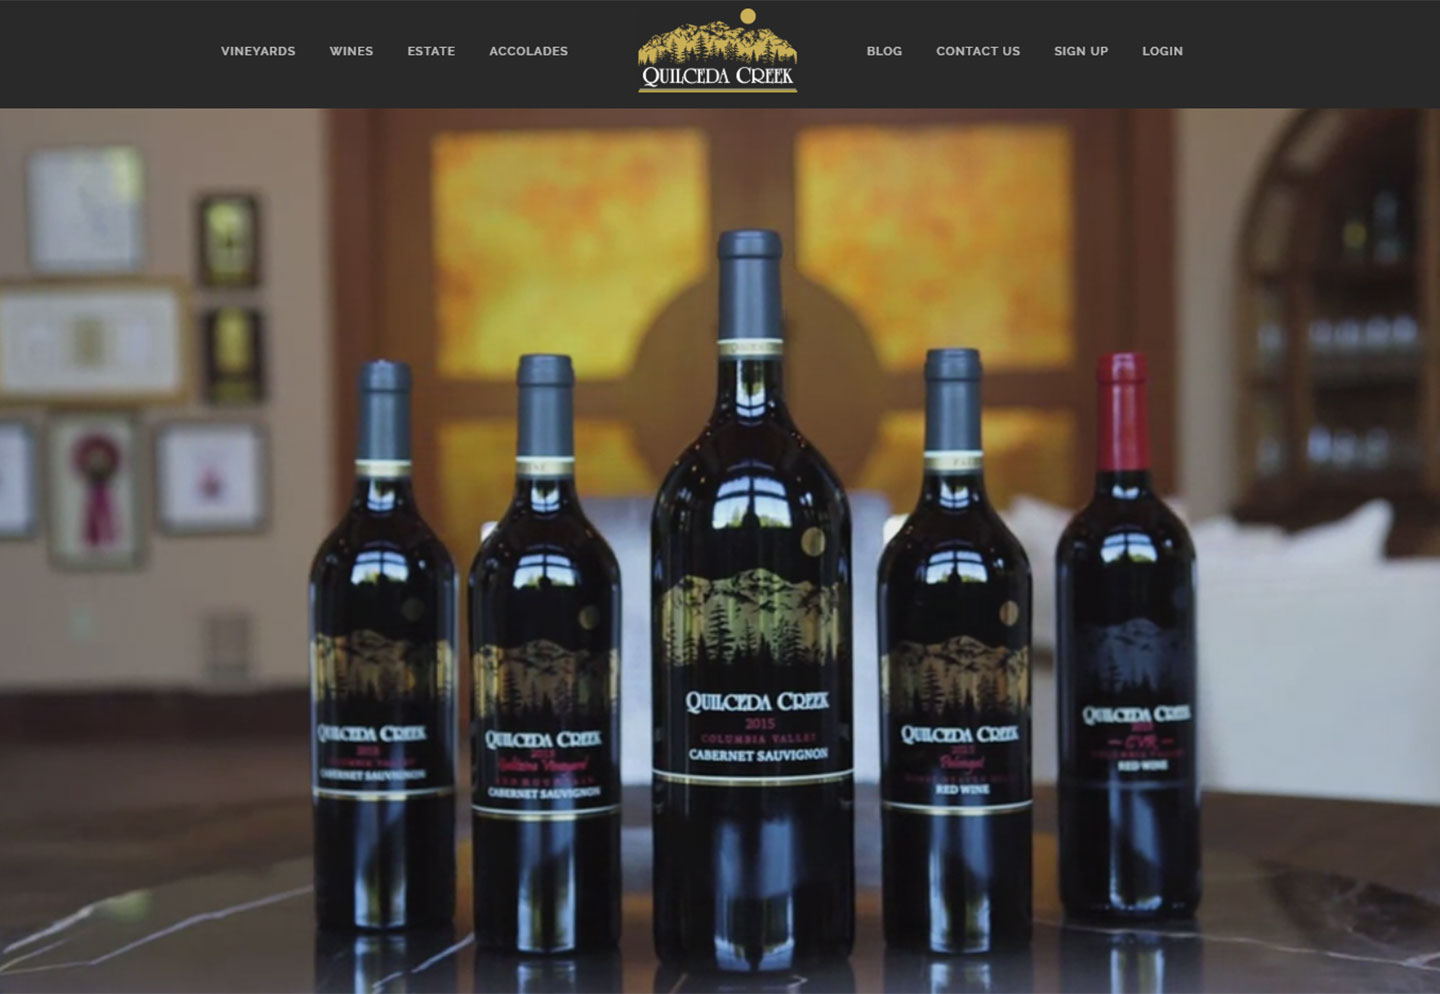 online commerce website for Quilceda Creek Winery